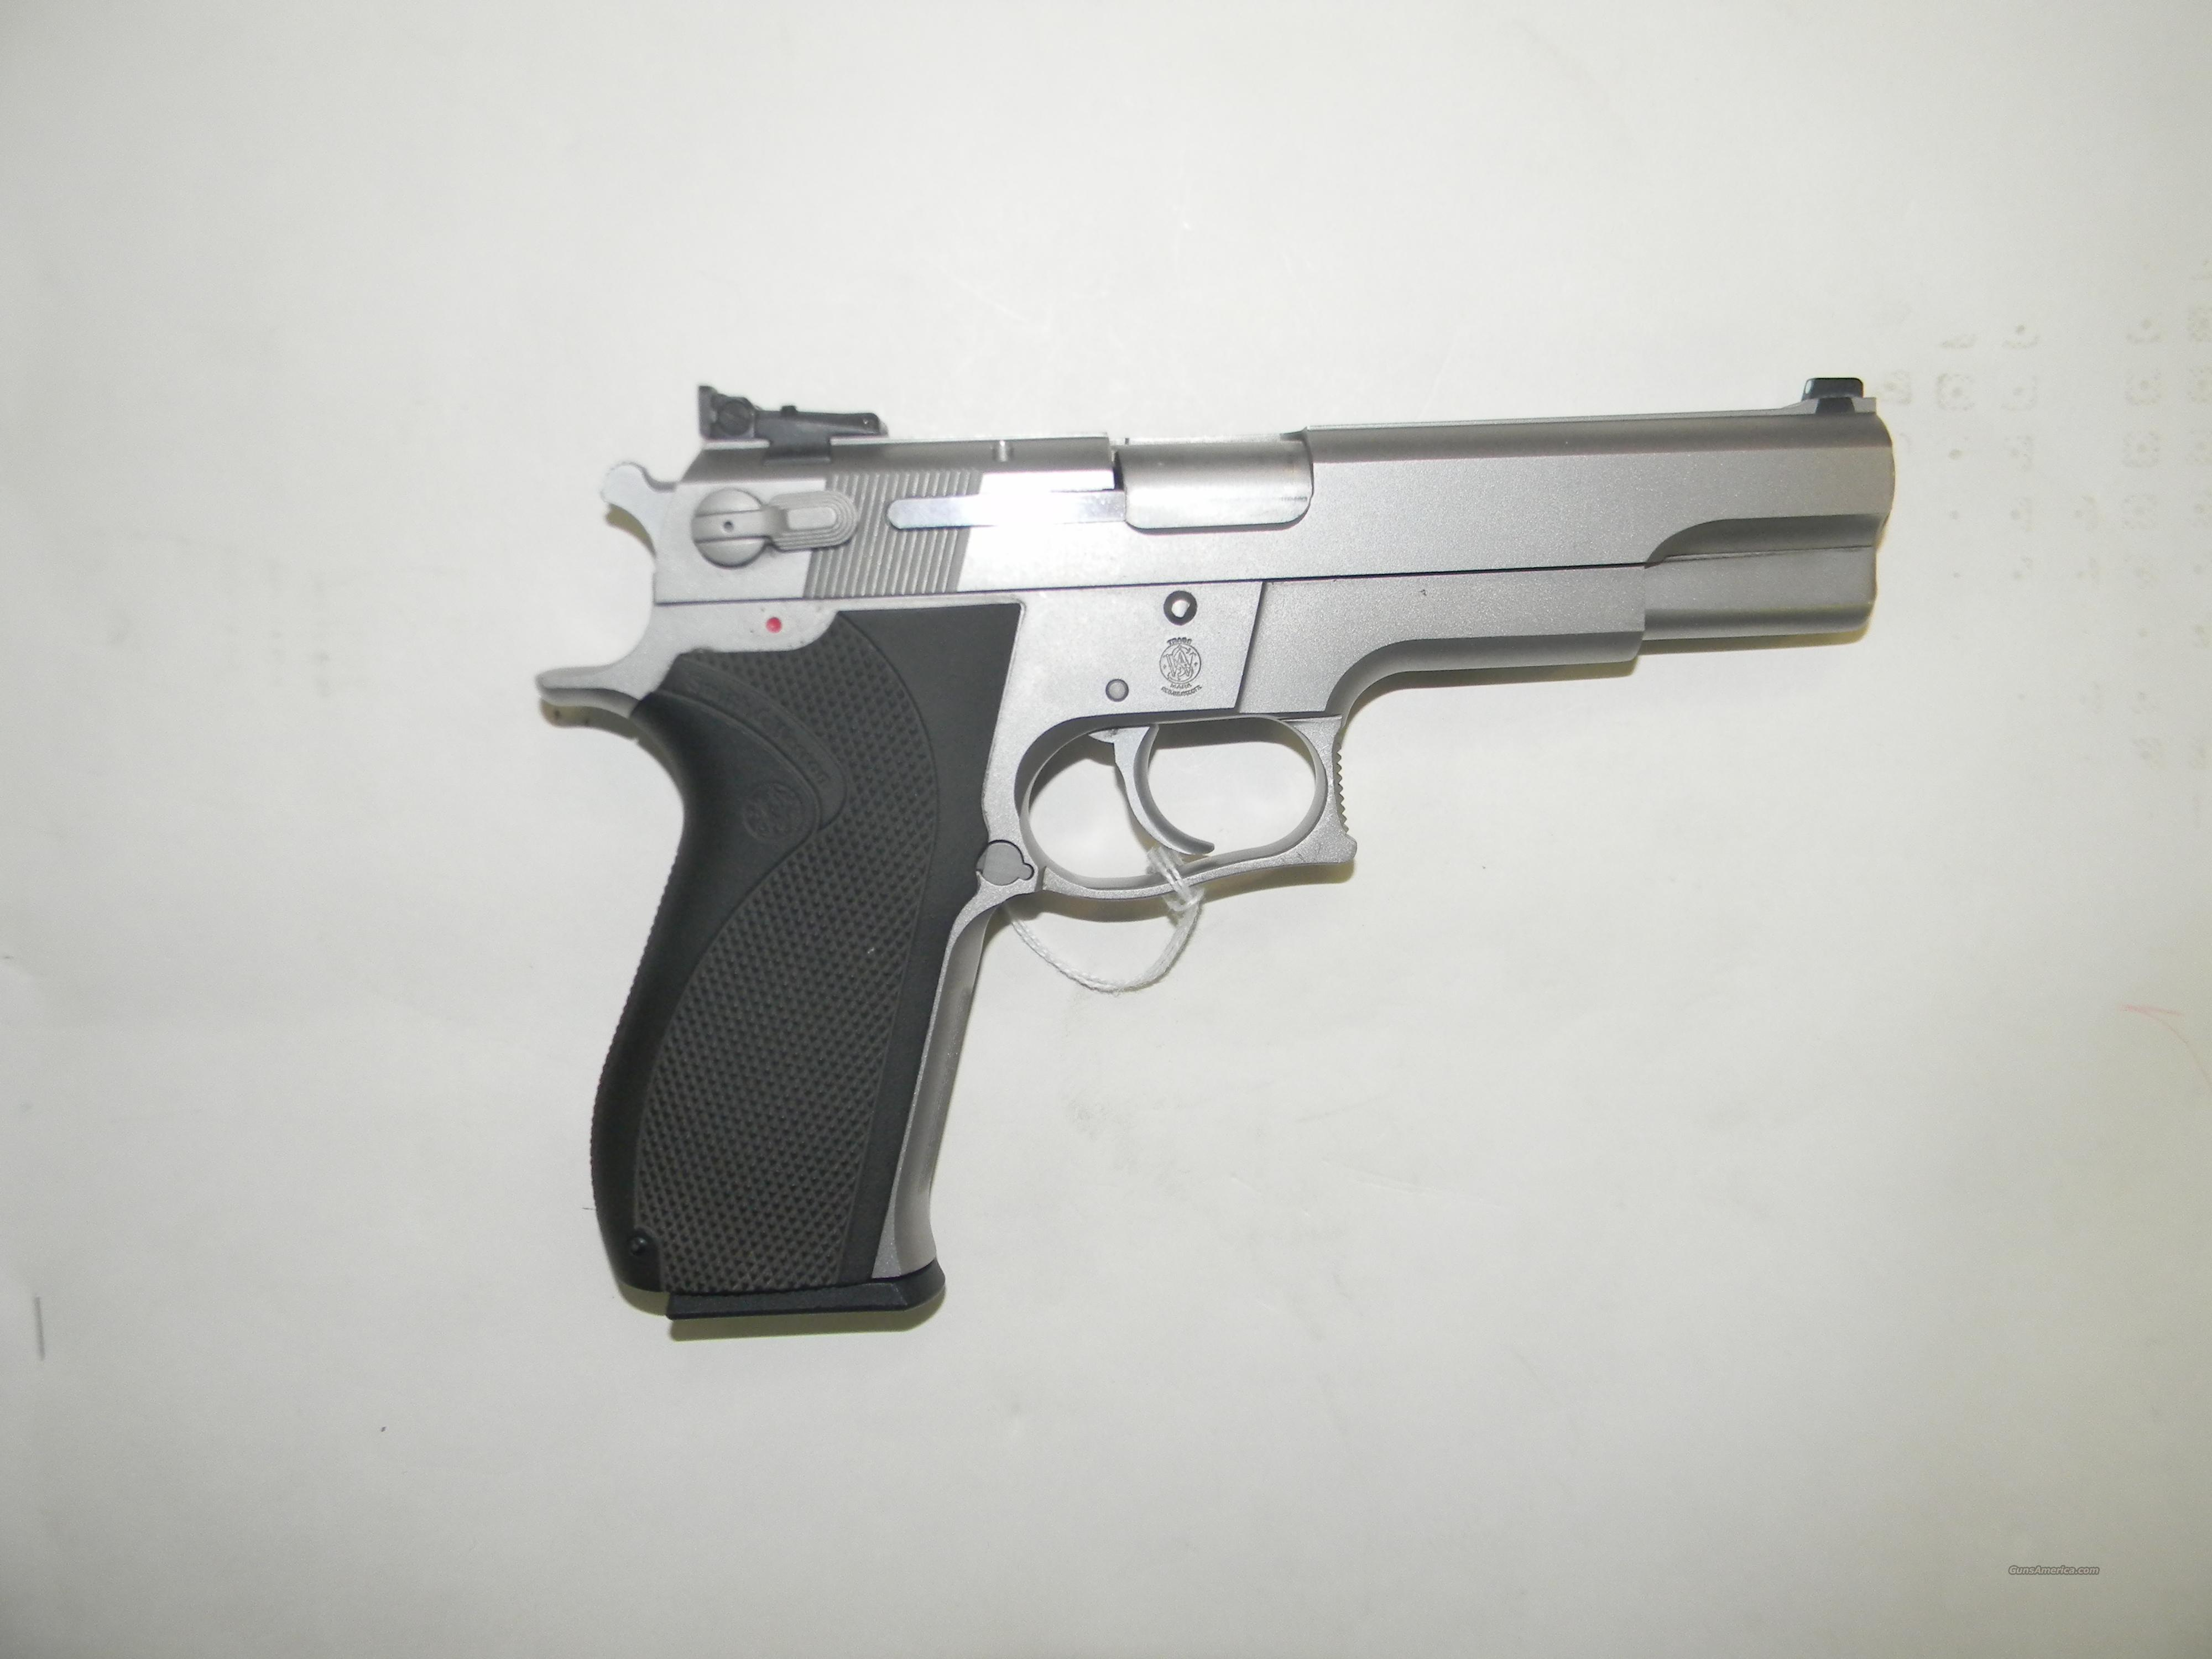 Smith and Wesson 4506 45 ACP  Guns > Pistols > Smith & Wesson Pistols - Autos > Steel Frame